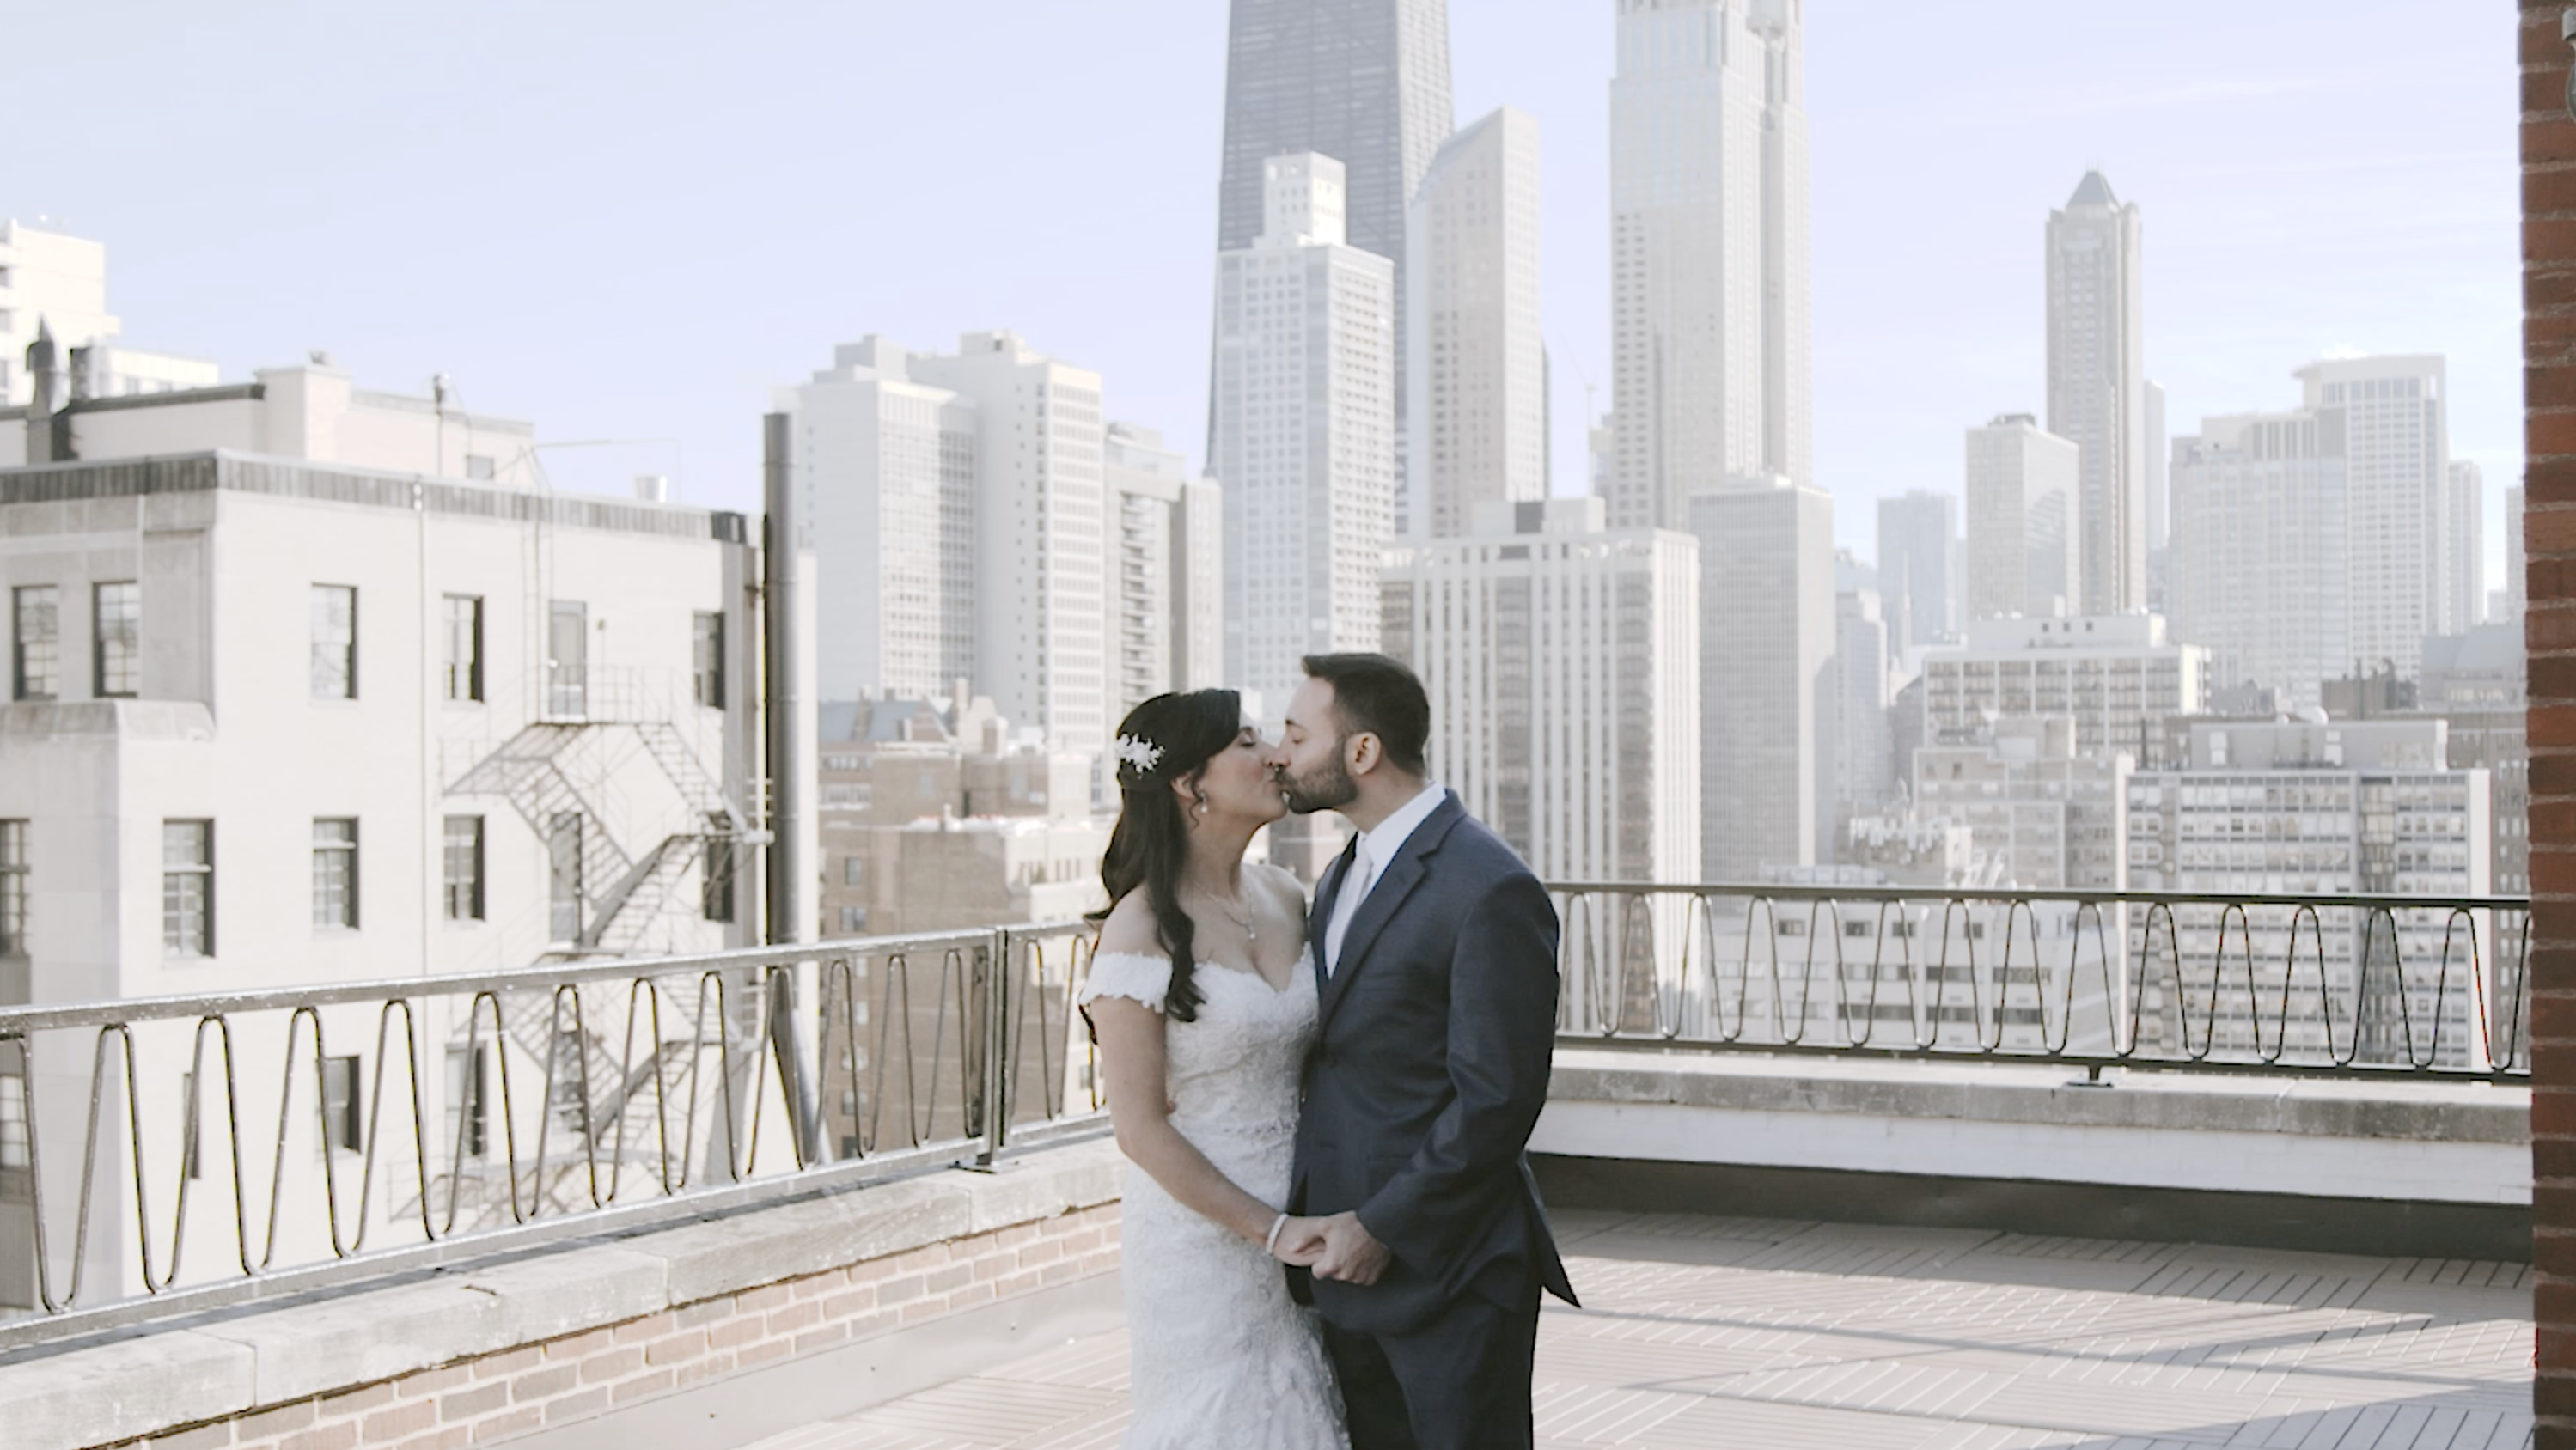 Ashley + Mike | Chicago, Illinois | Chicago History Museum